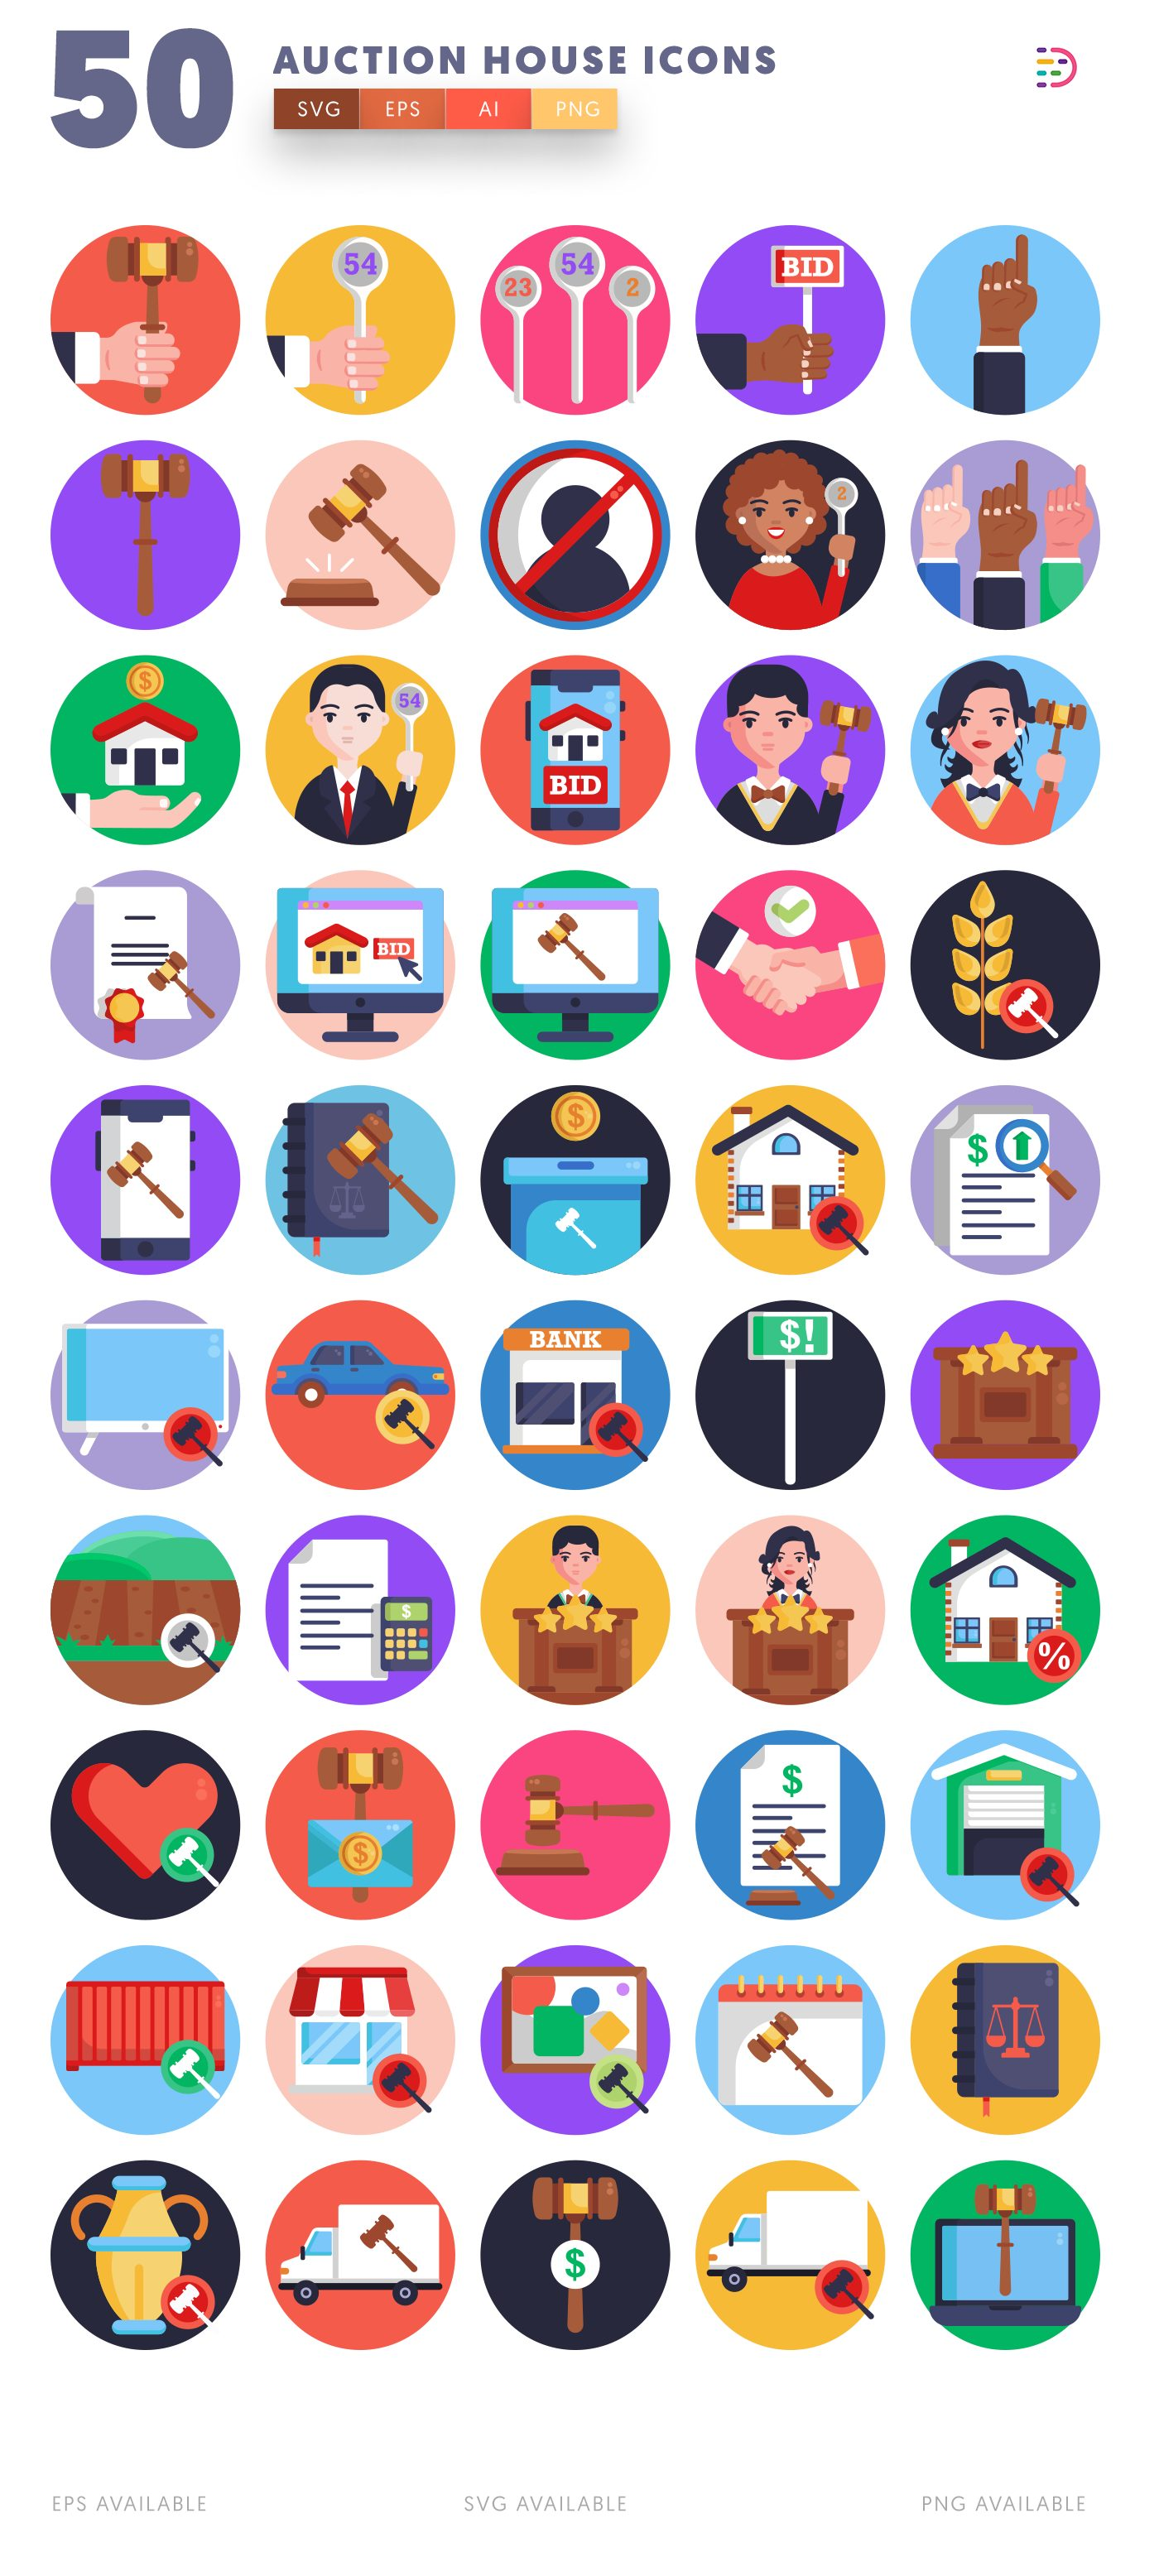 Auction House icon pack